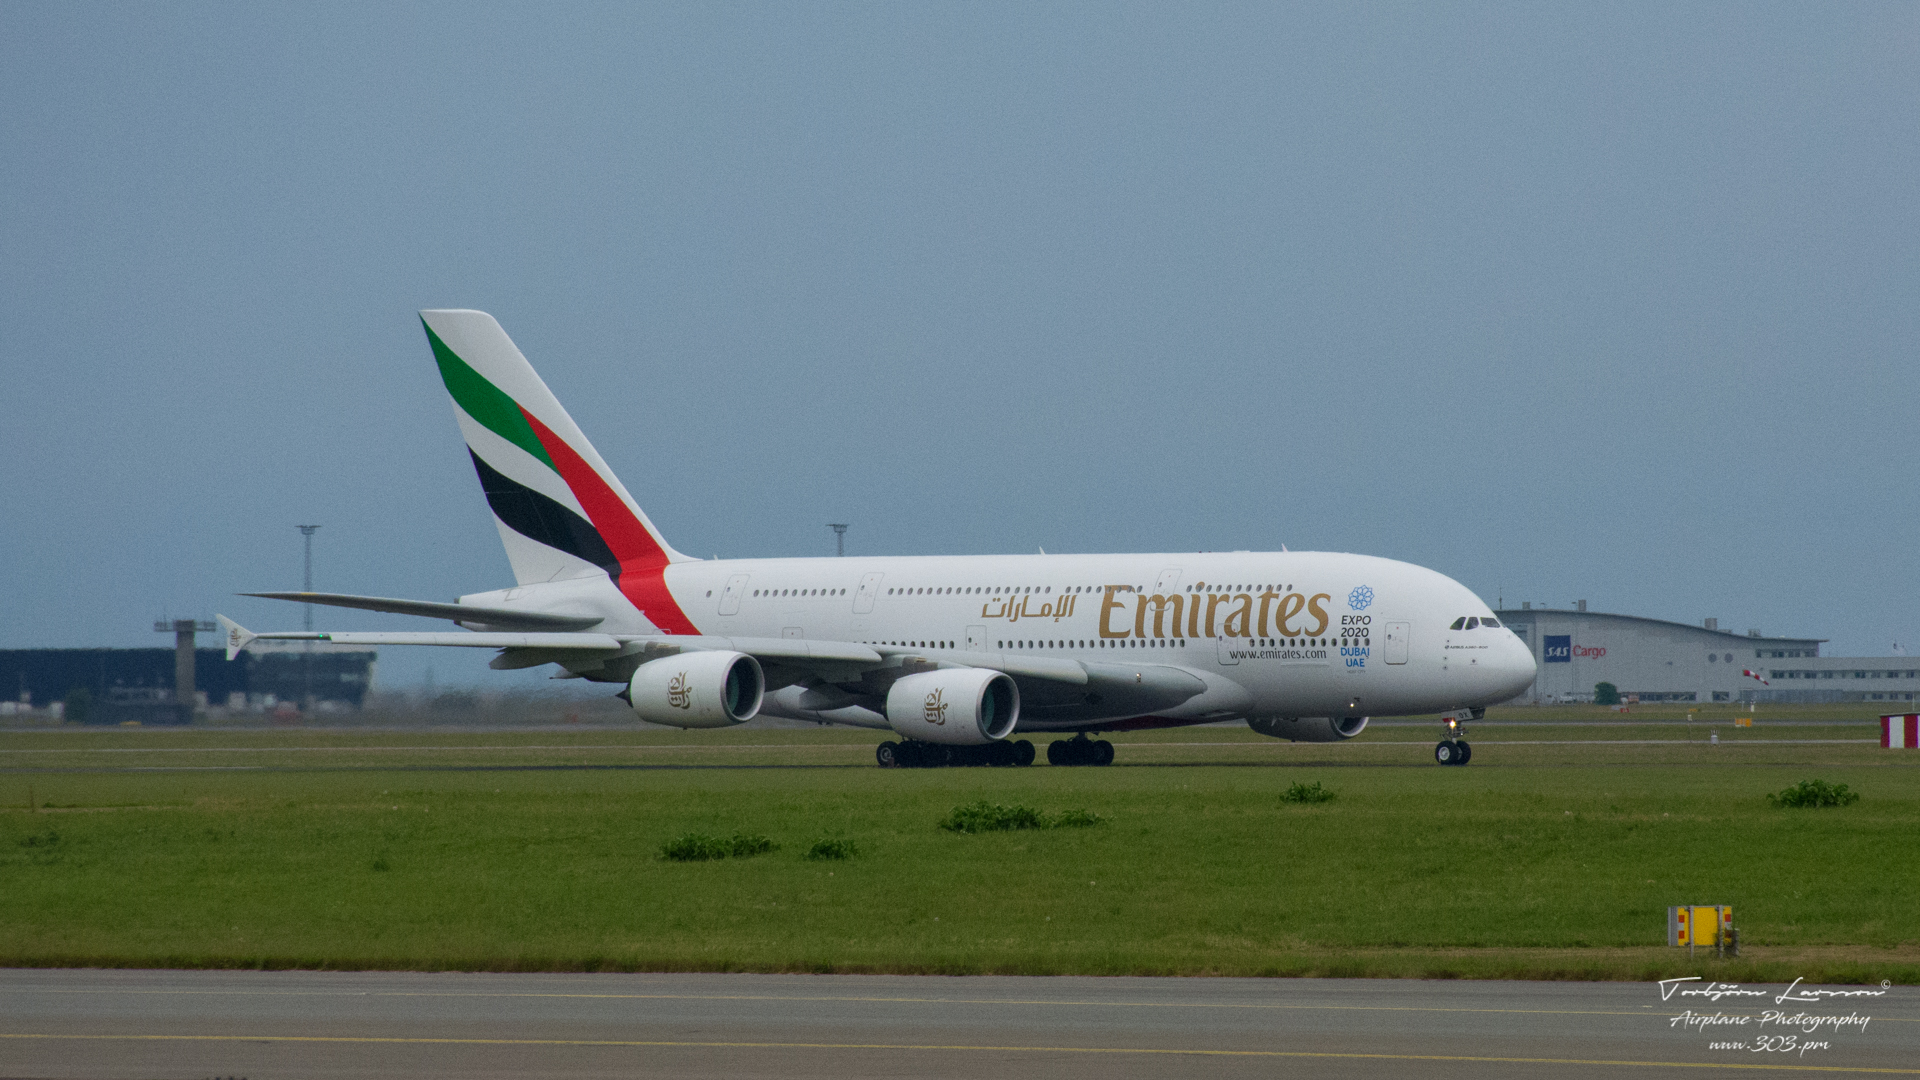 ACE_0802-Airbus A380-861 (A6-EOX) - Emirates Airlines